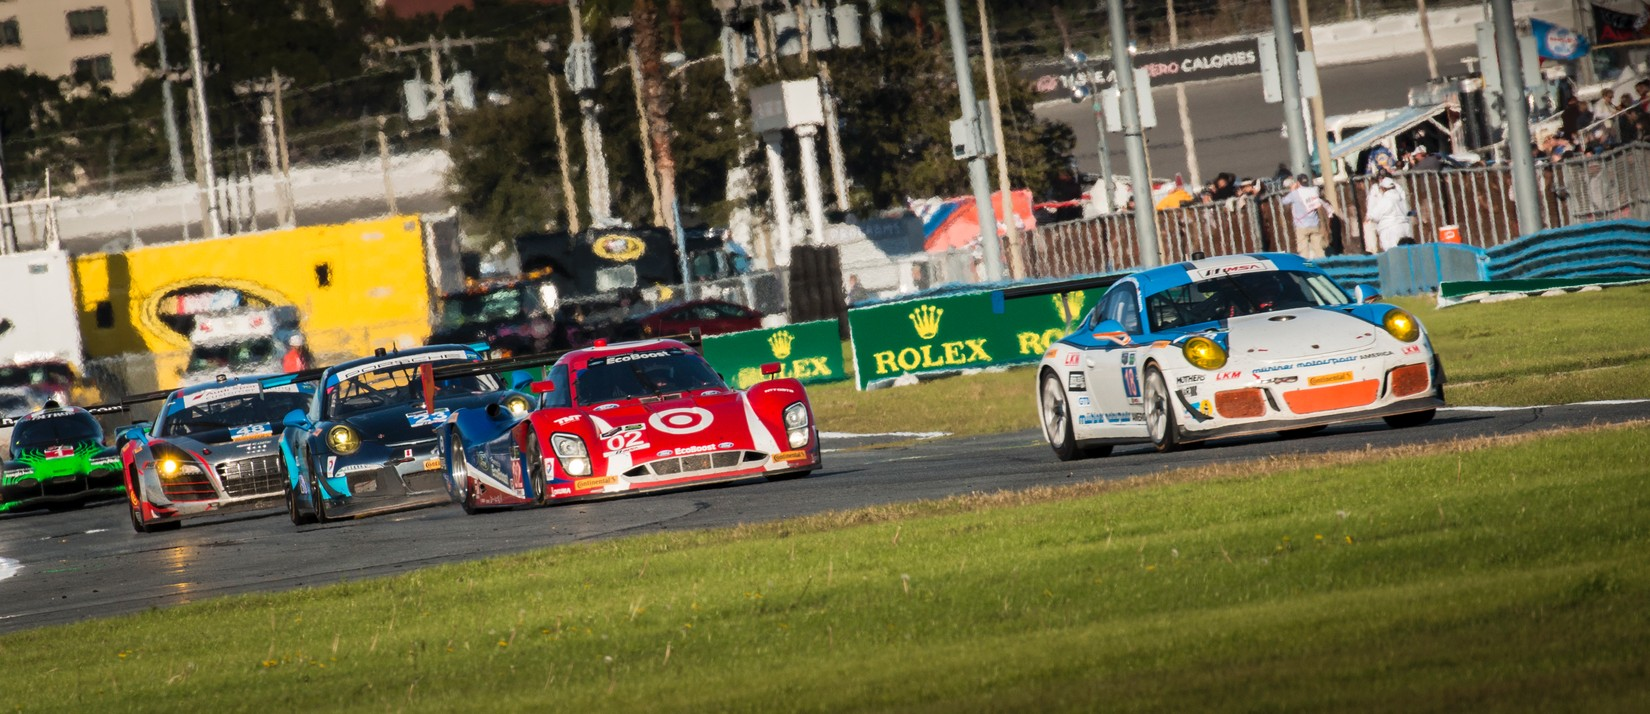 Indycar drivers to drive in the 2016 Rolex 24